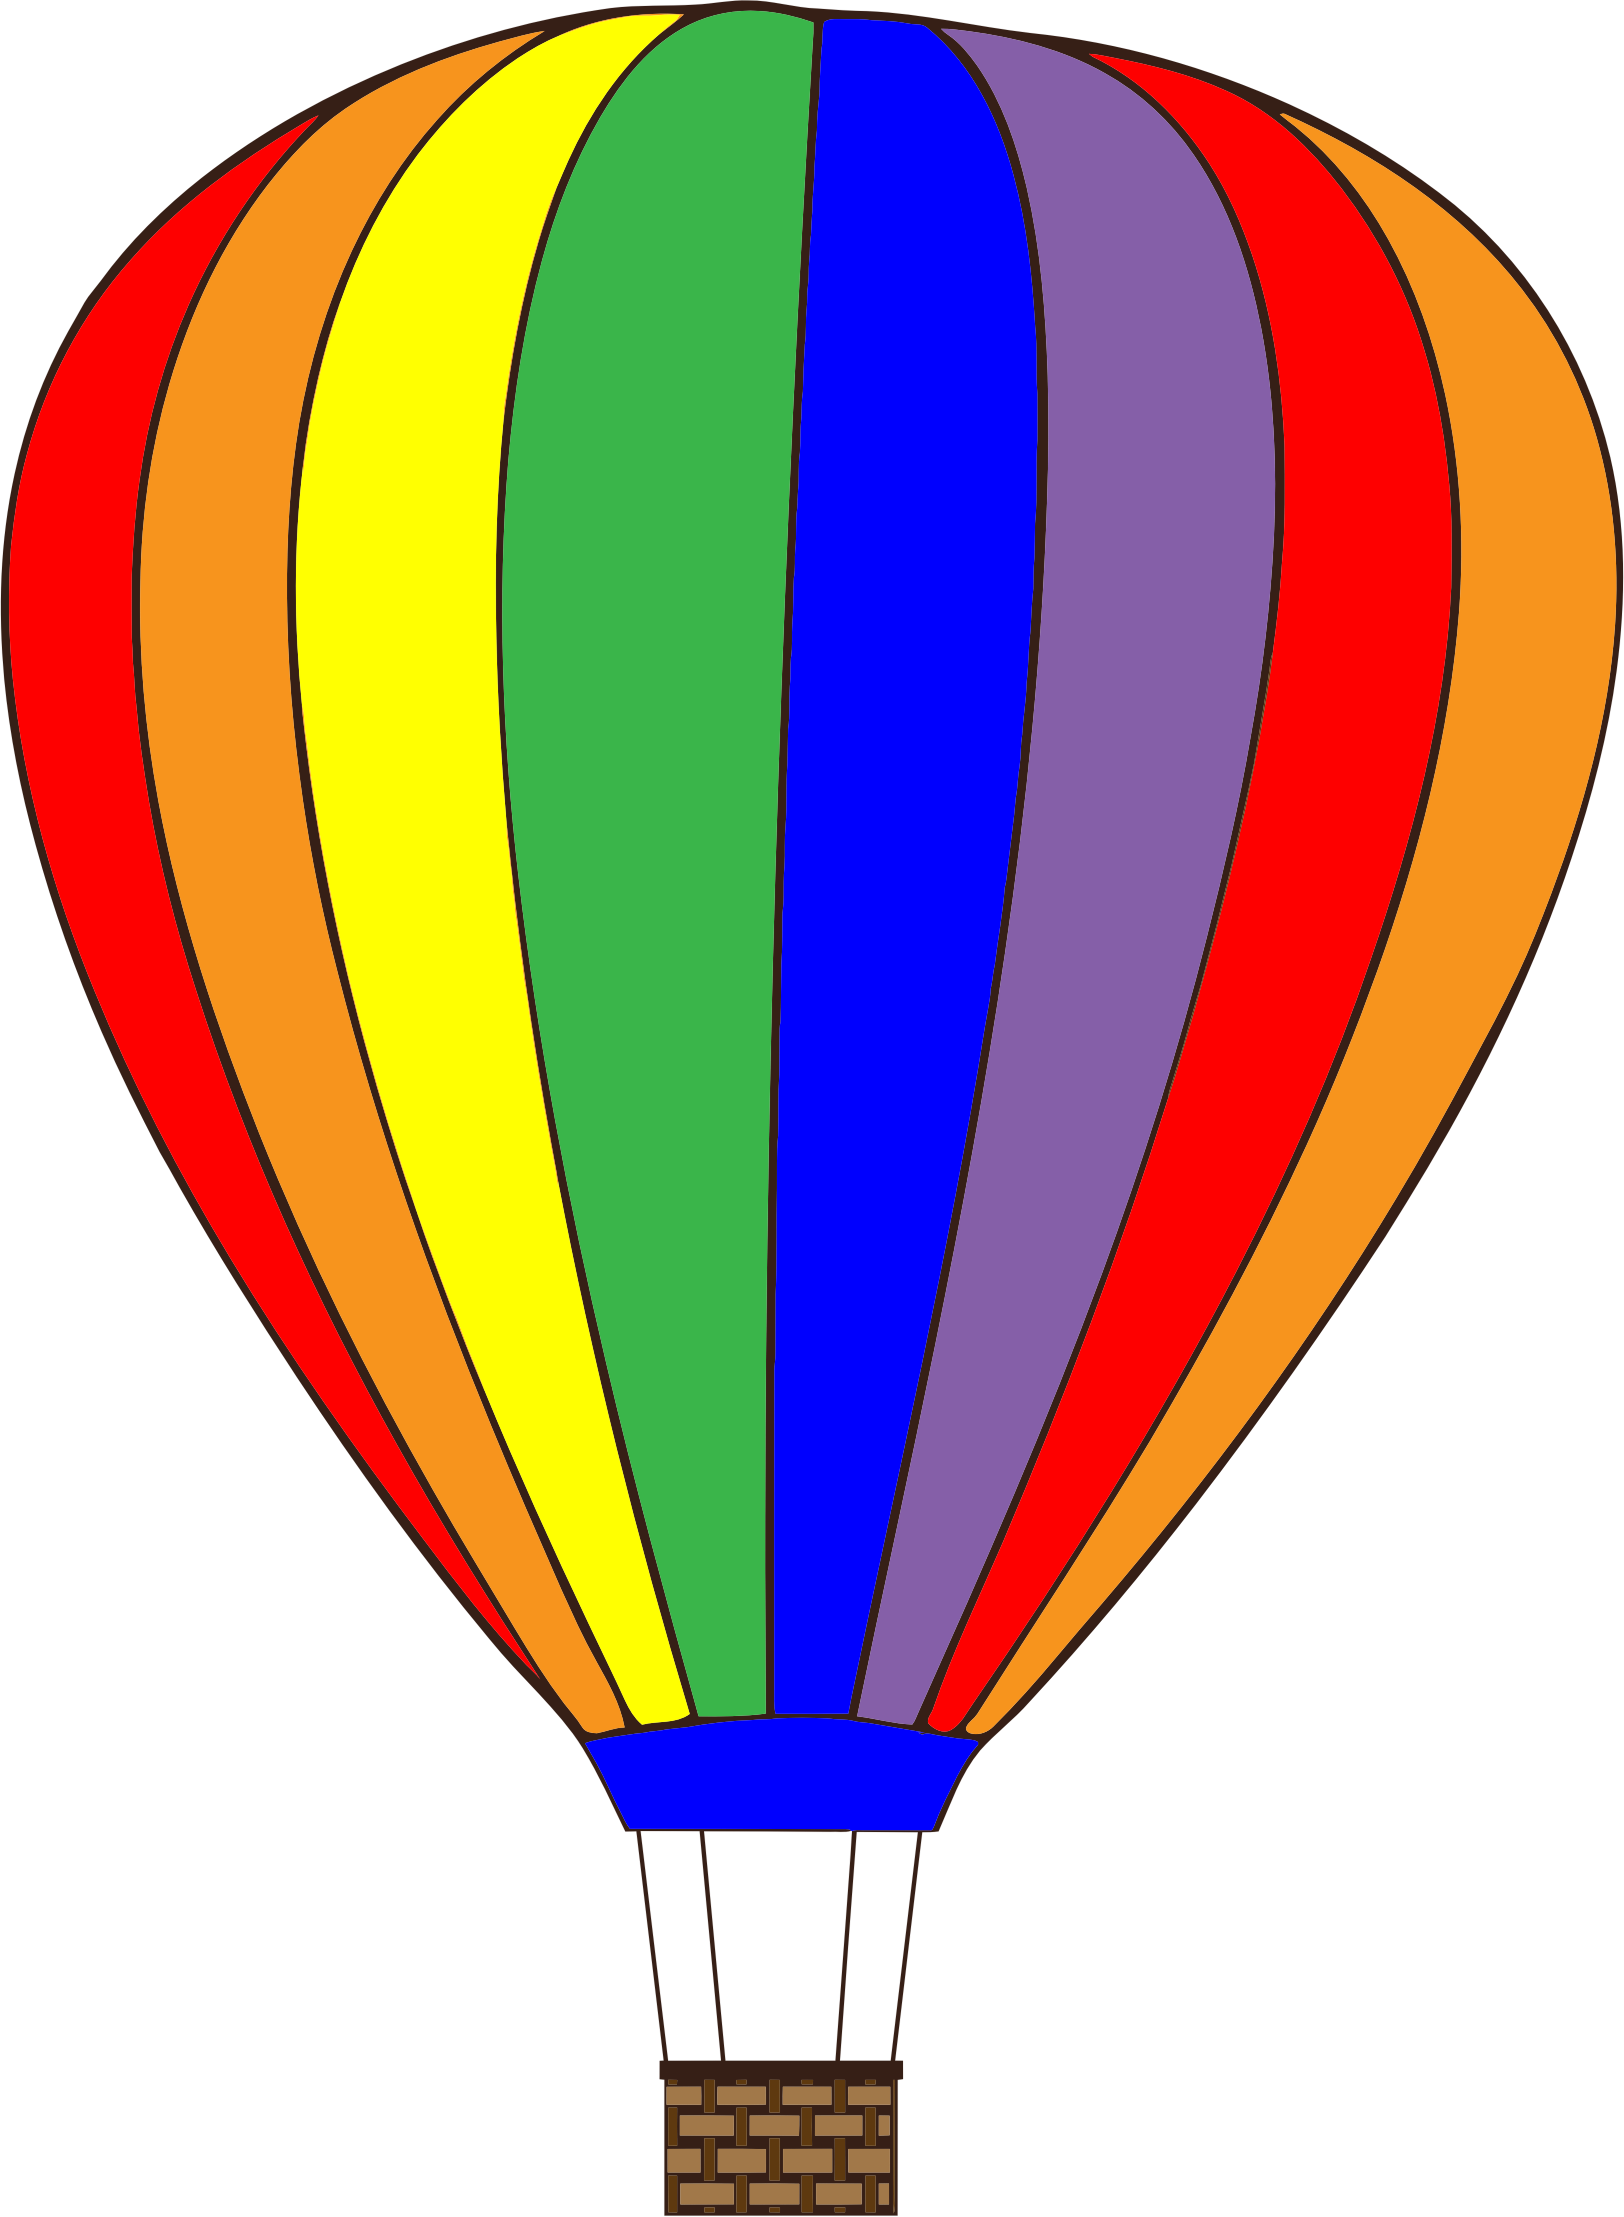 Colorful Hot Air Balloon by GDJ